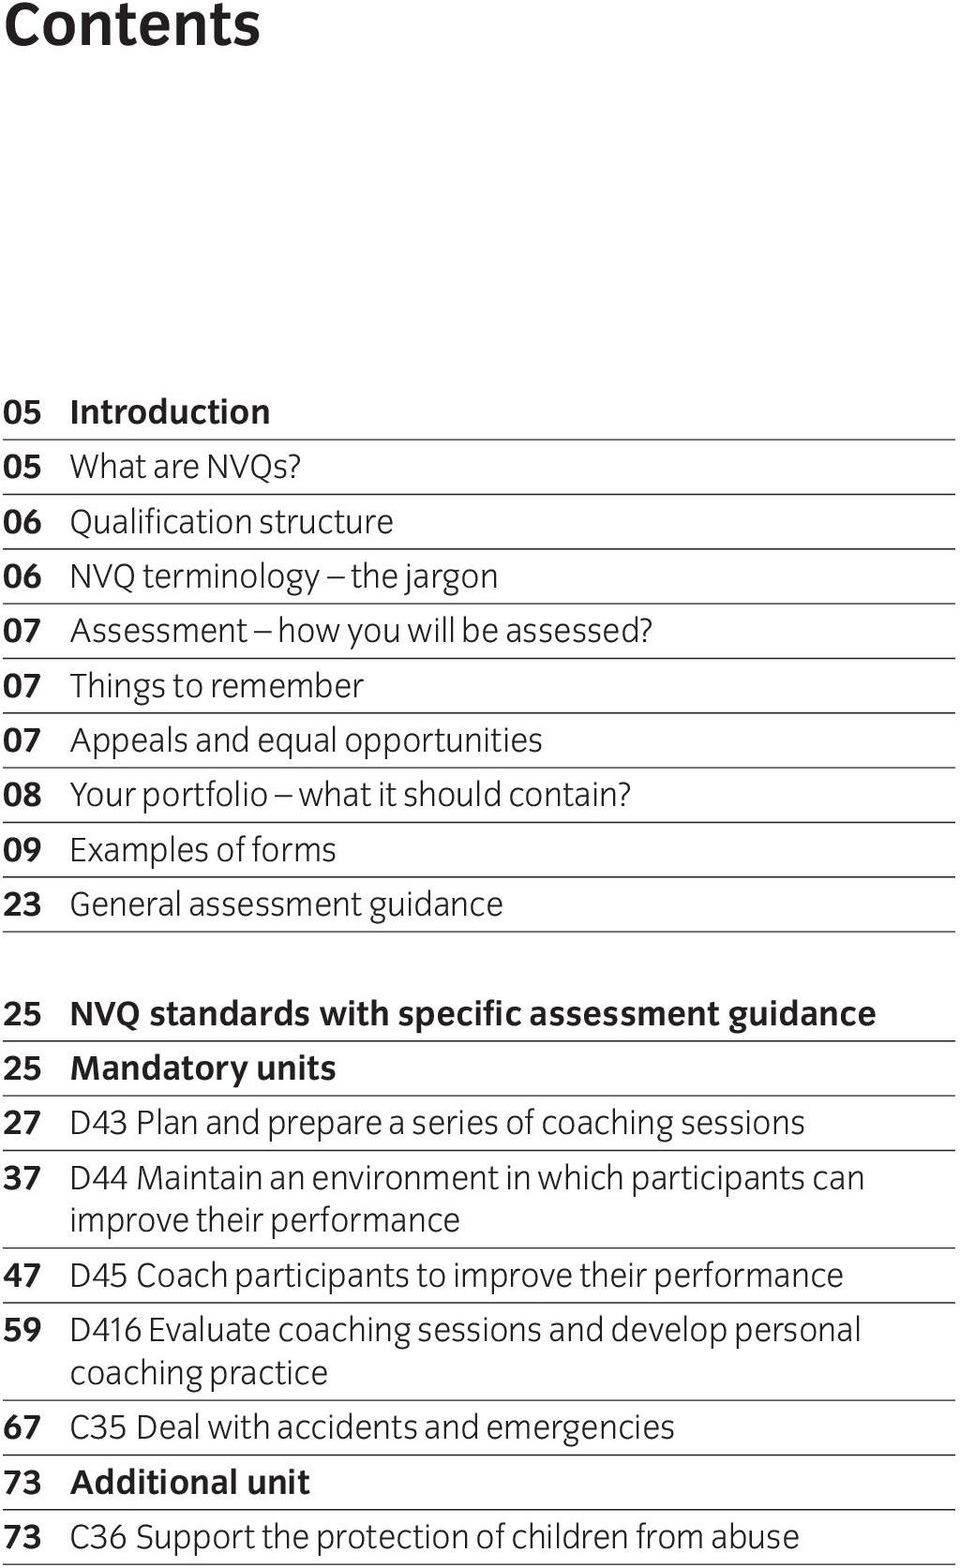 09 Examples of forms 23 General assessment guidance 25 NVQ standards with specific assessment guidance 25 Mandatory units 27 D43 Plan and prepare a series of coaching sessions 37 D44